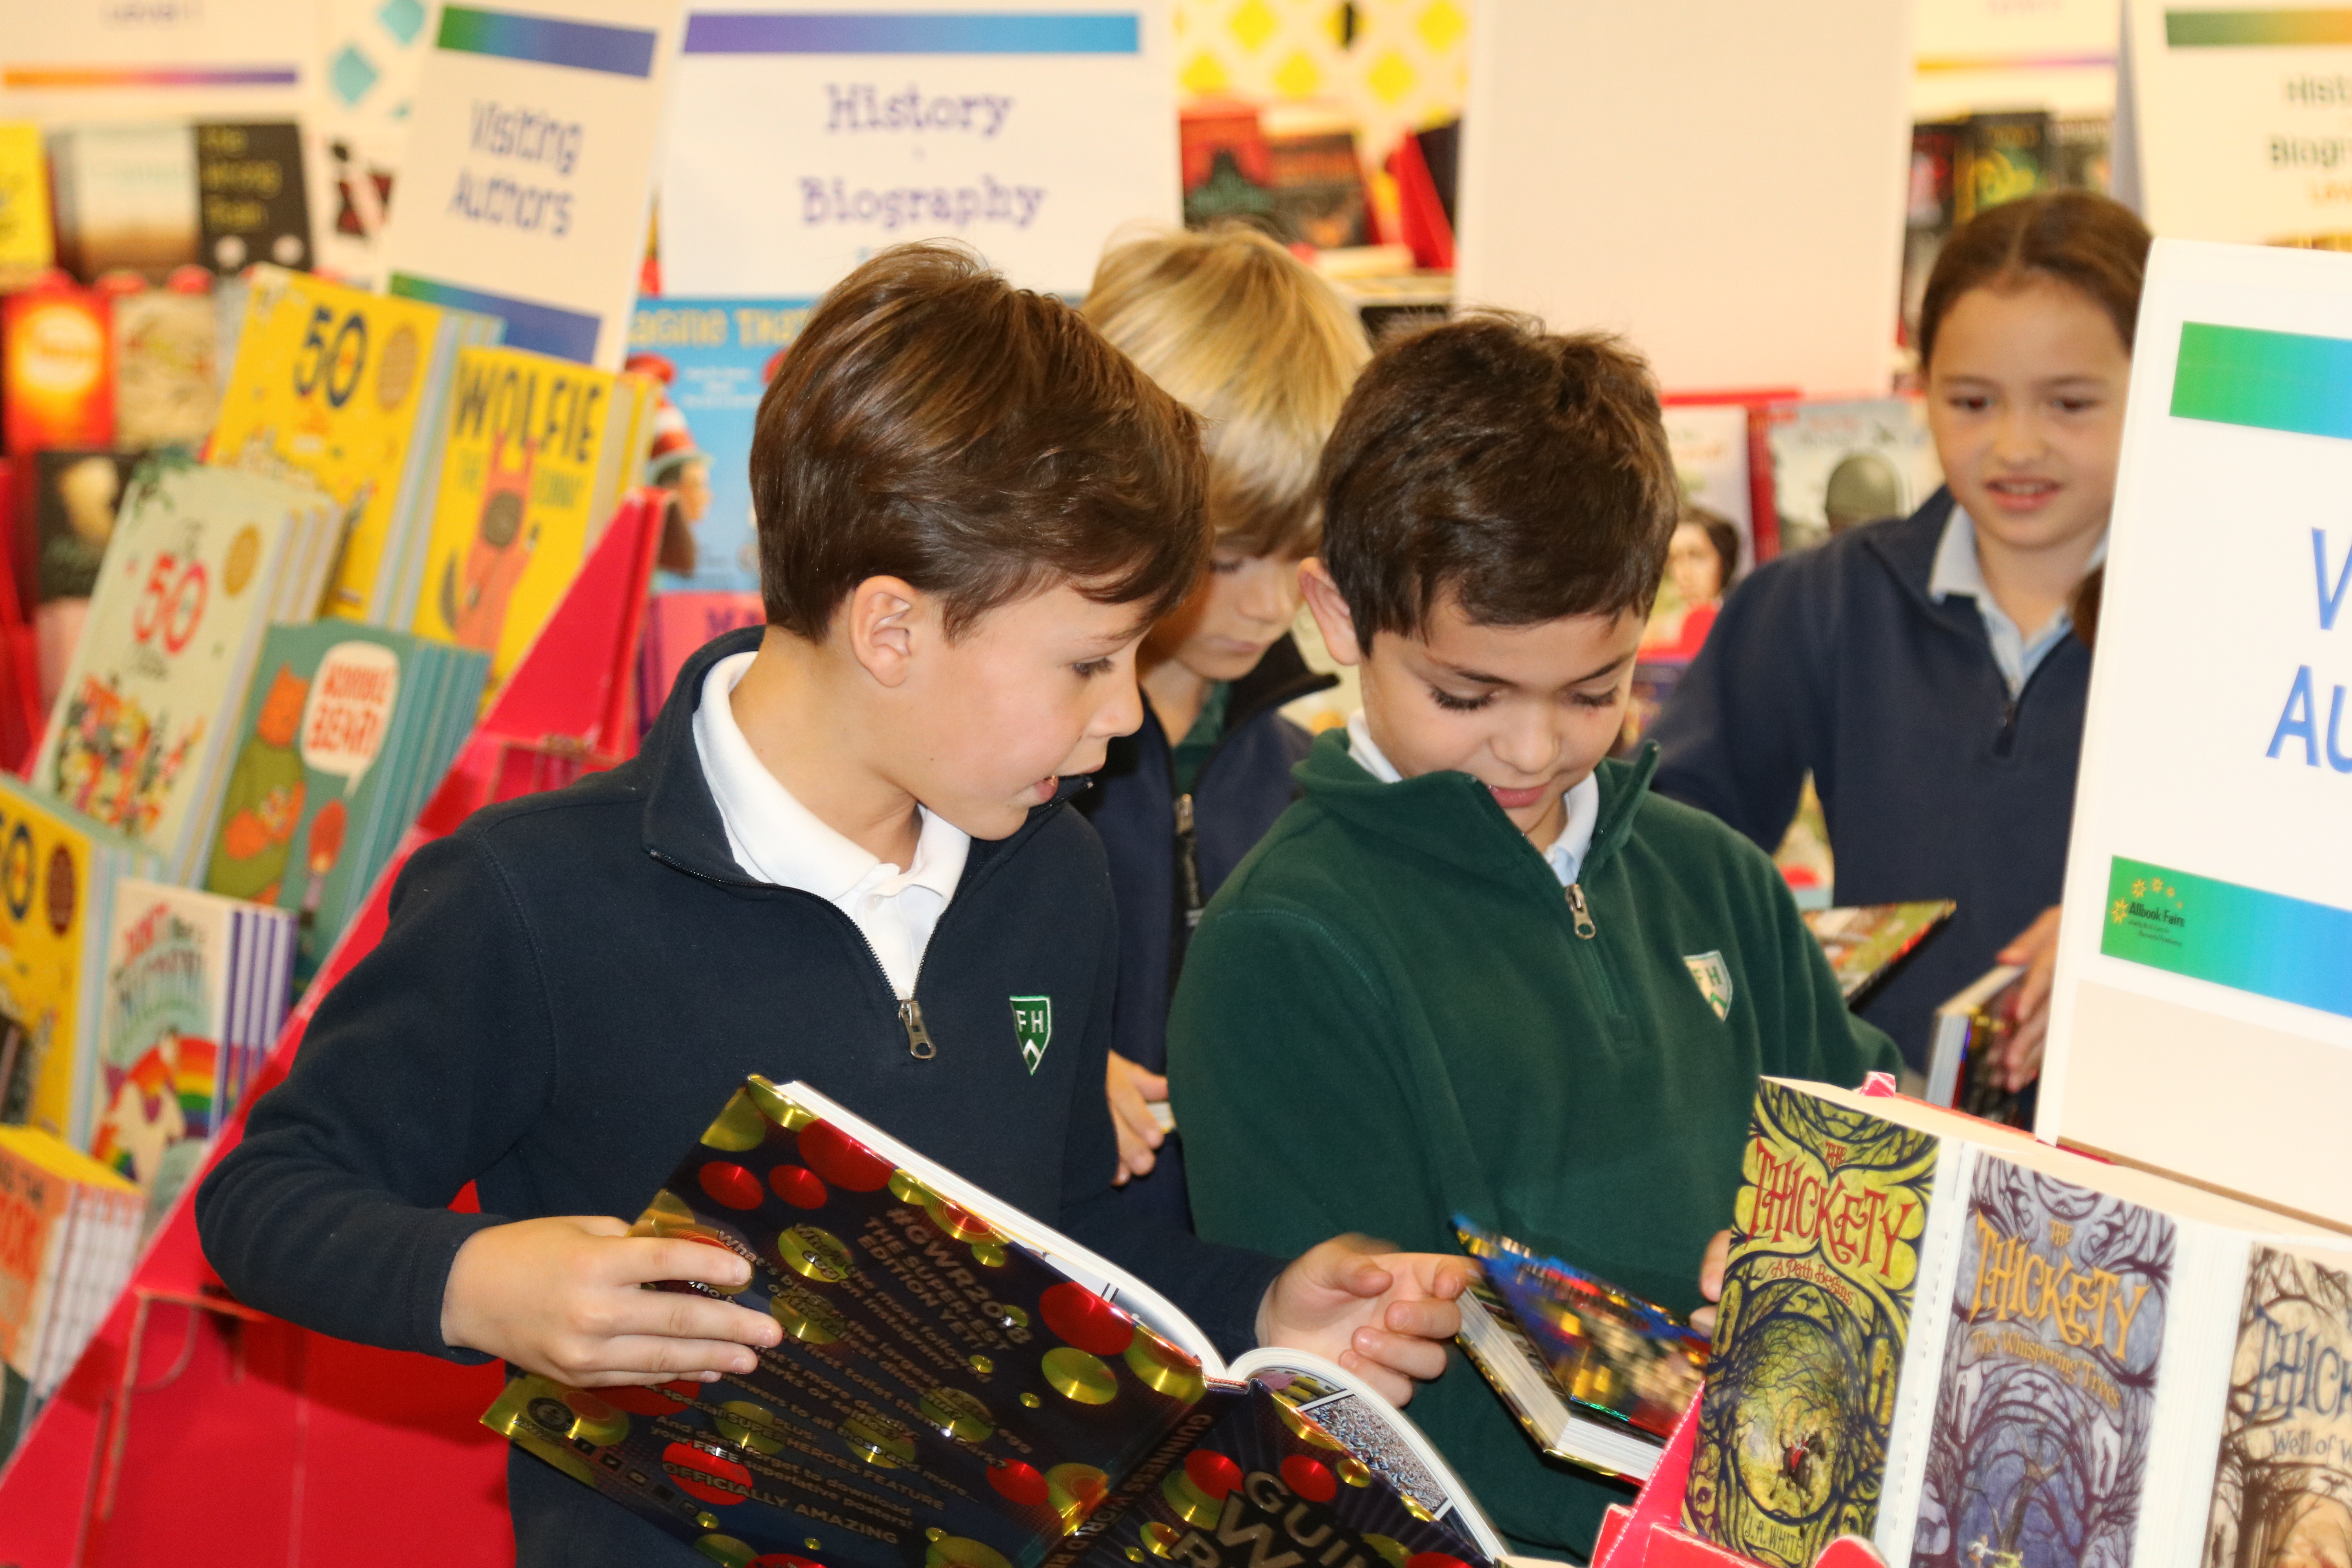 Boys reading at the School Book Fair